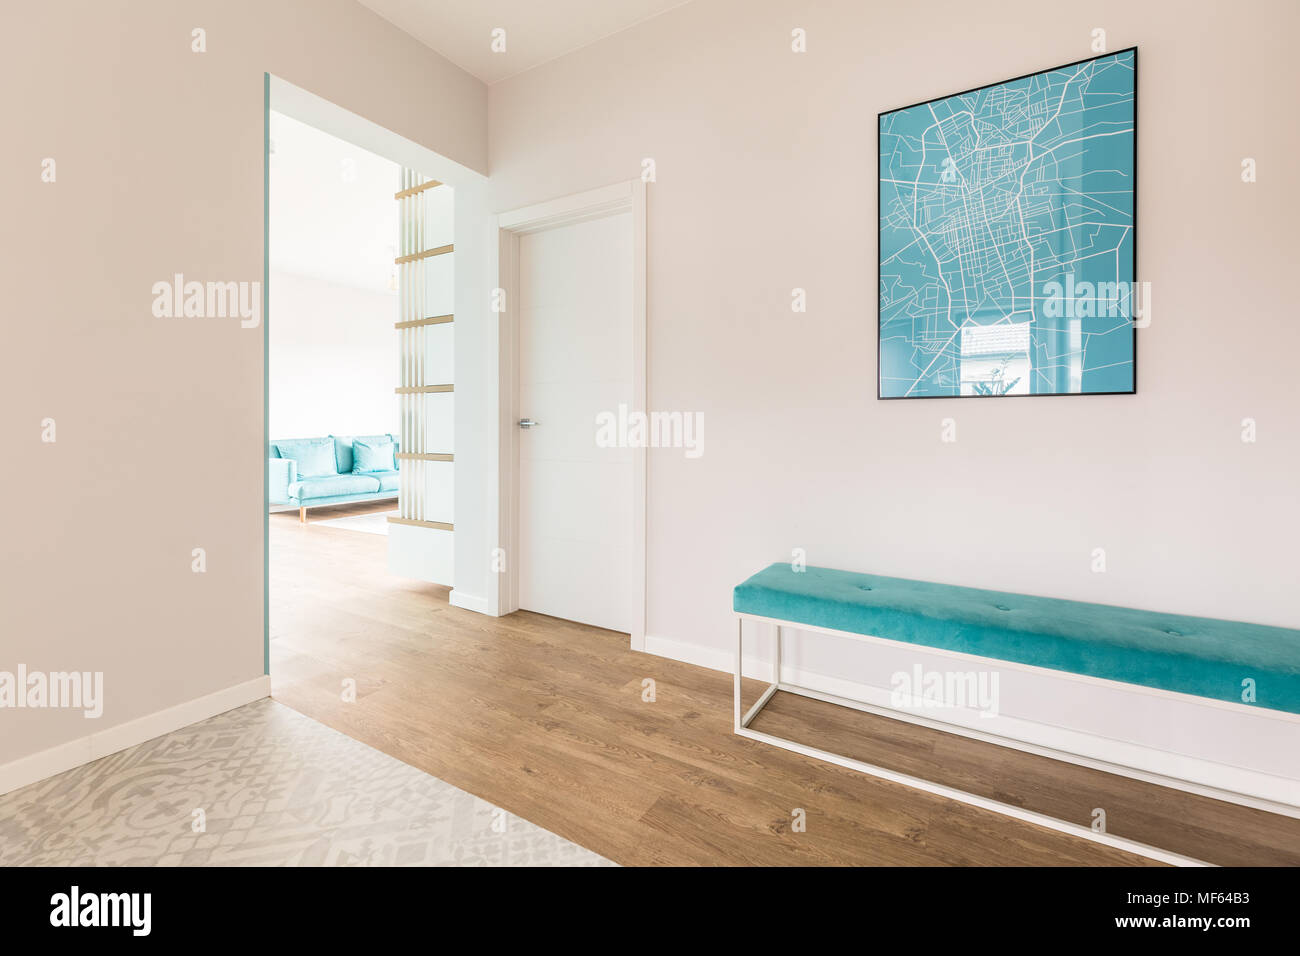 Simple hall with a blue map and bench and living room interior in ...